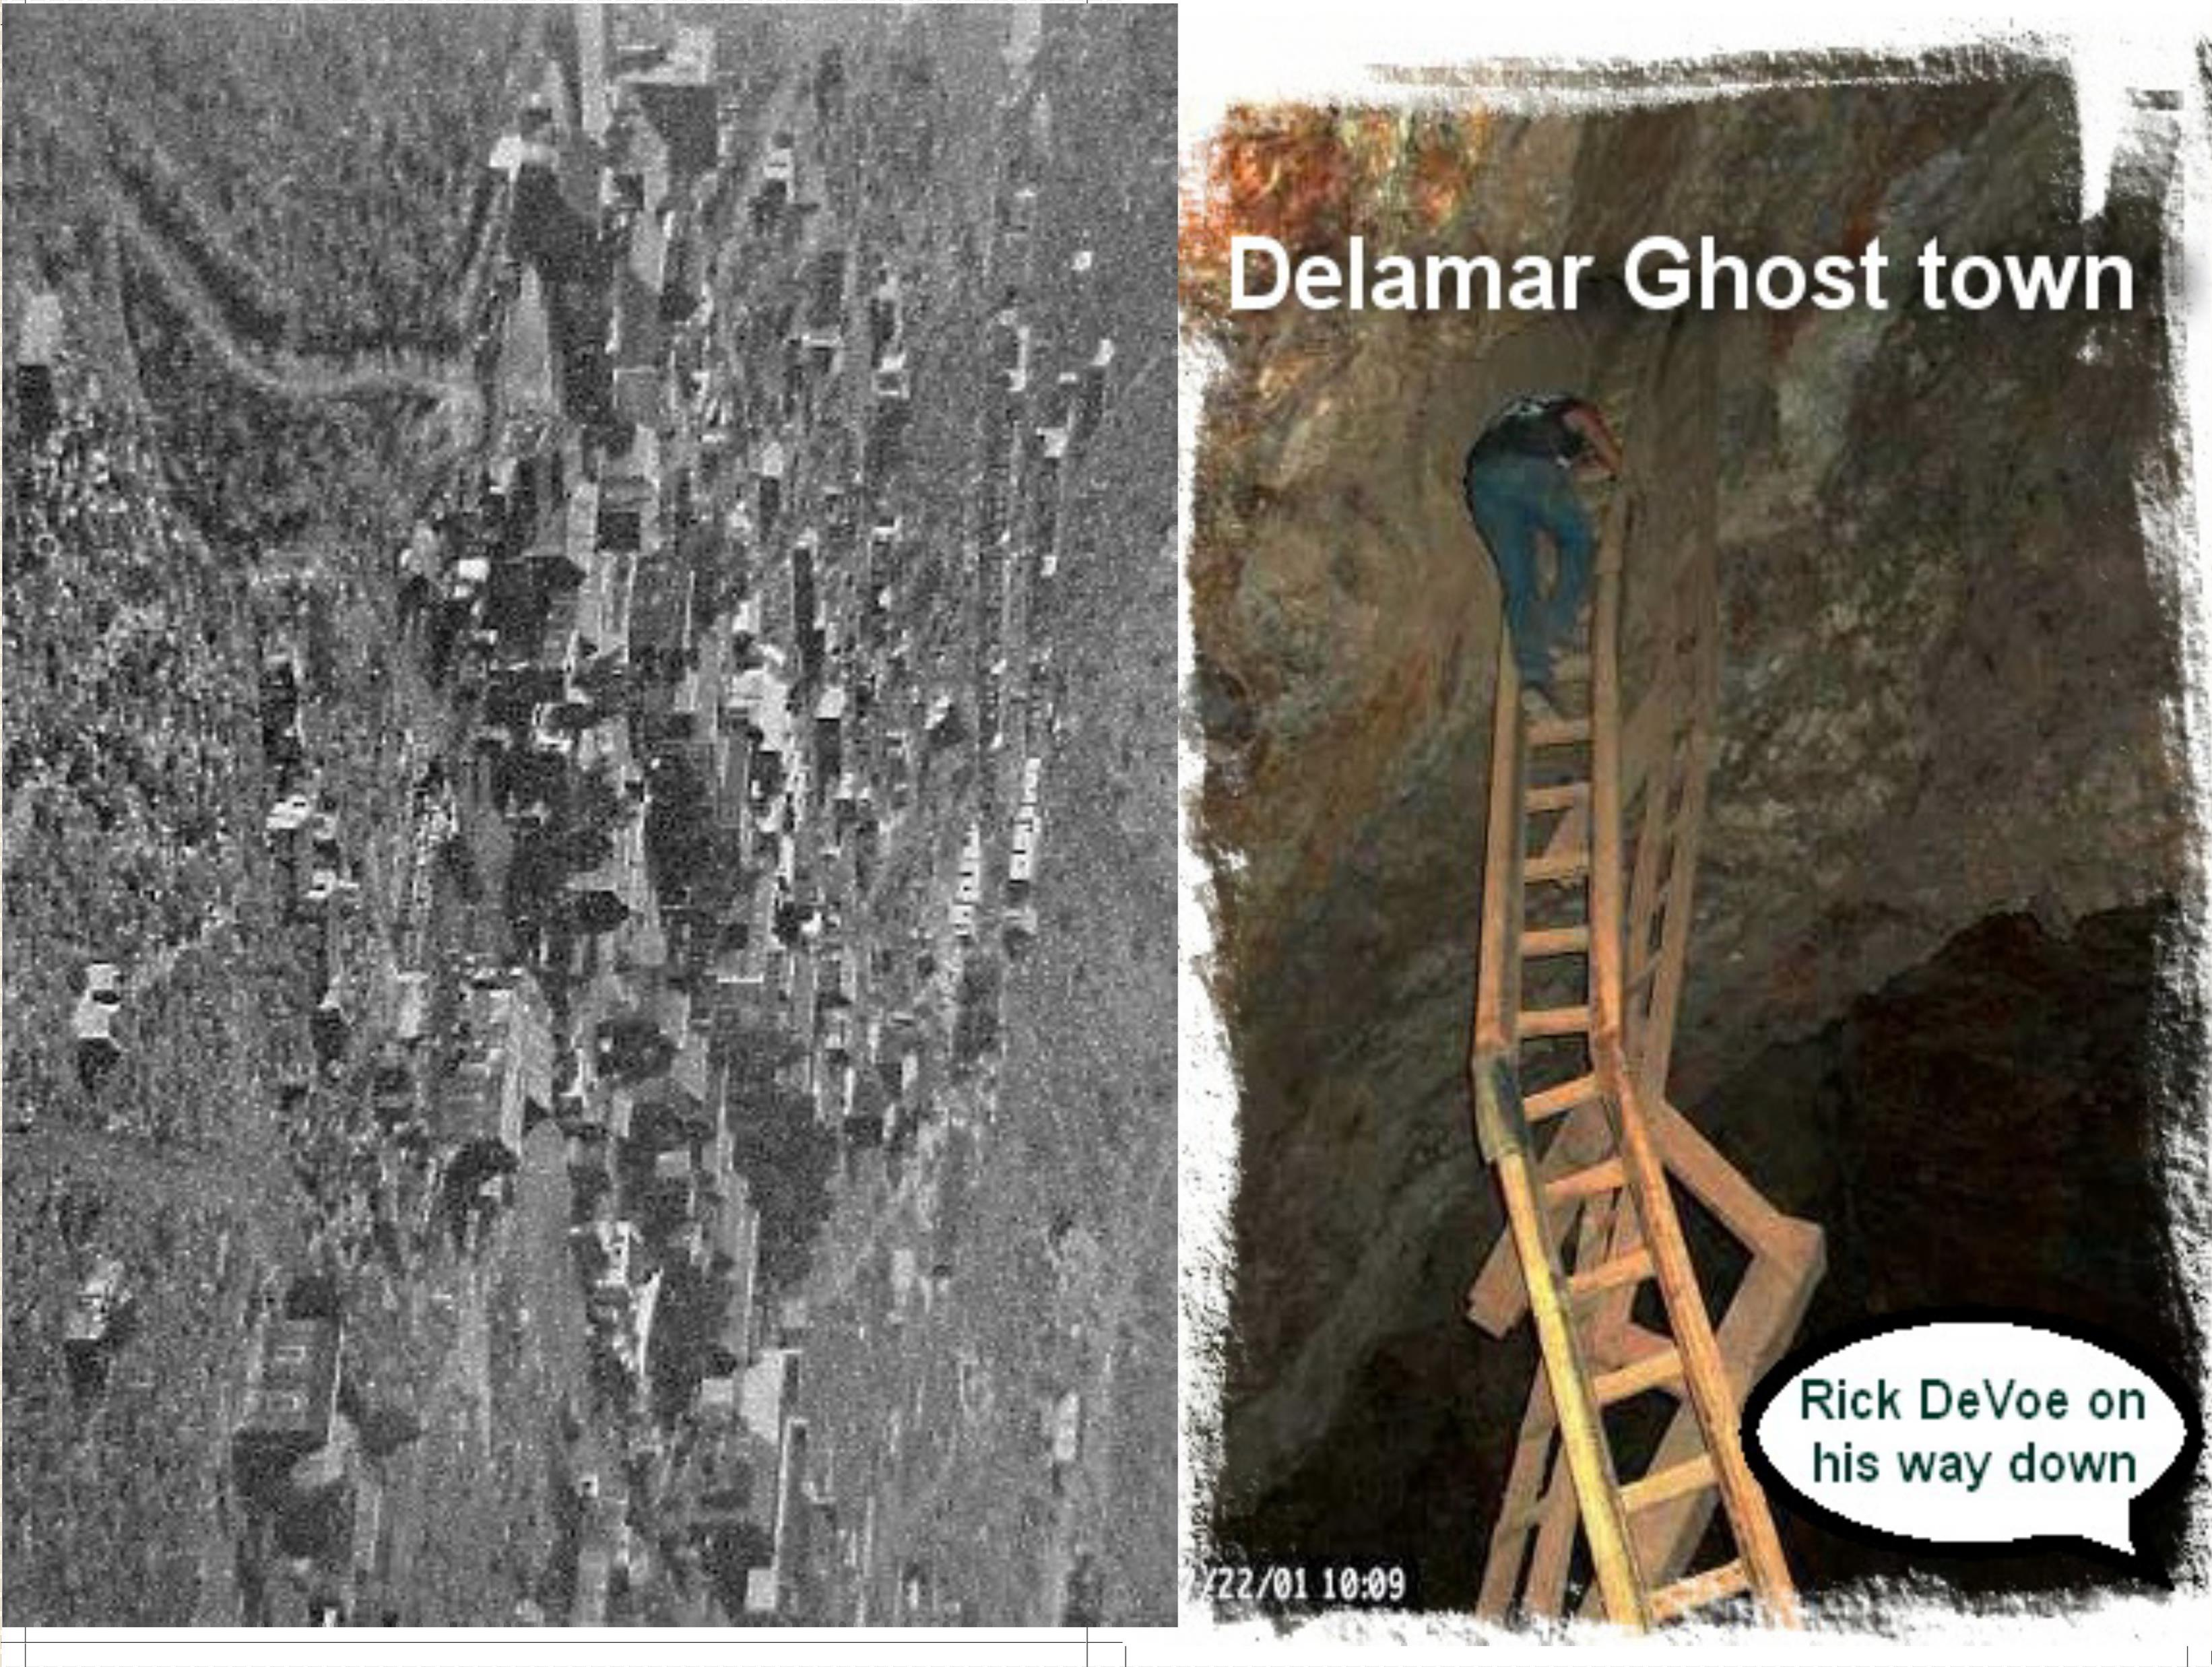 Delamar Ghost Town cover image